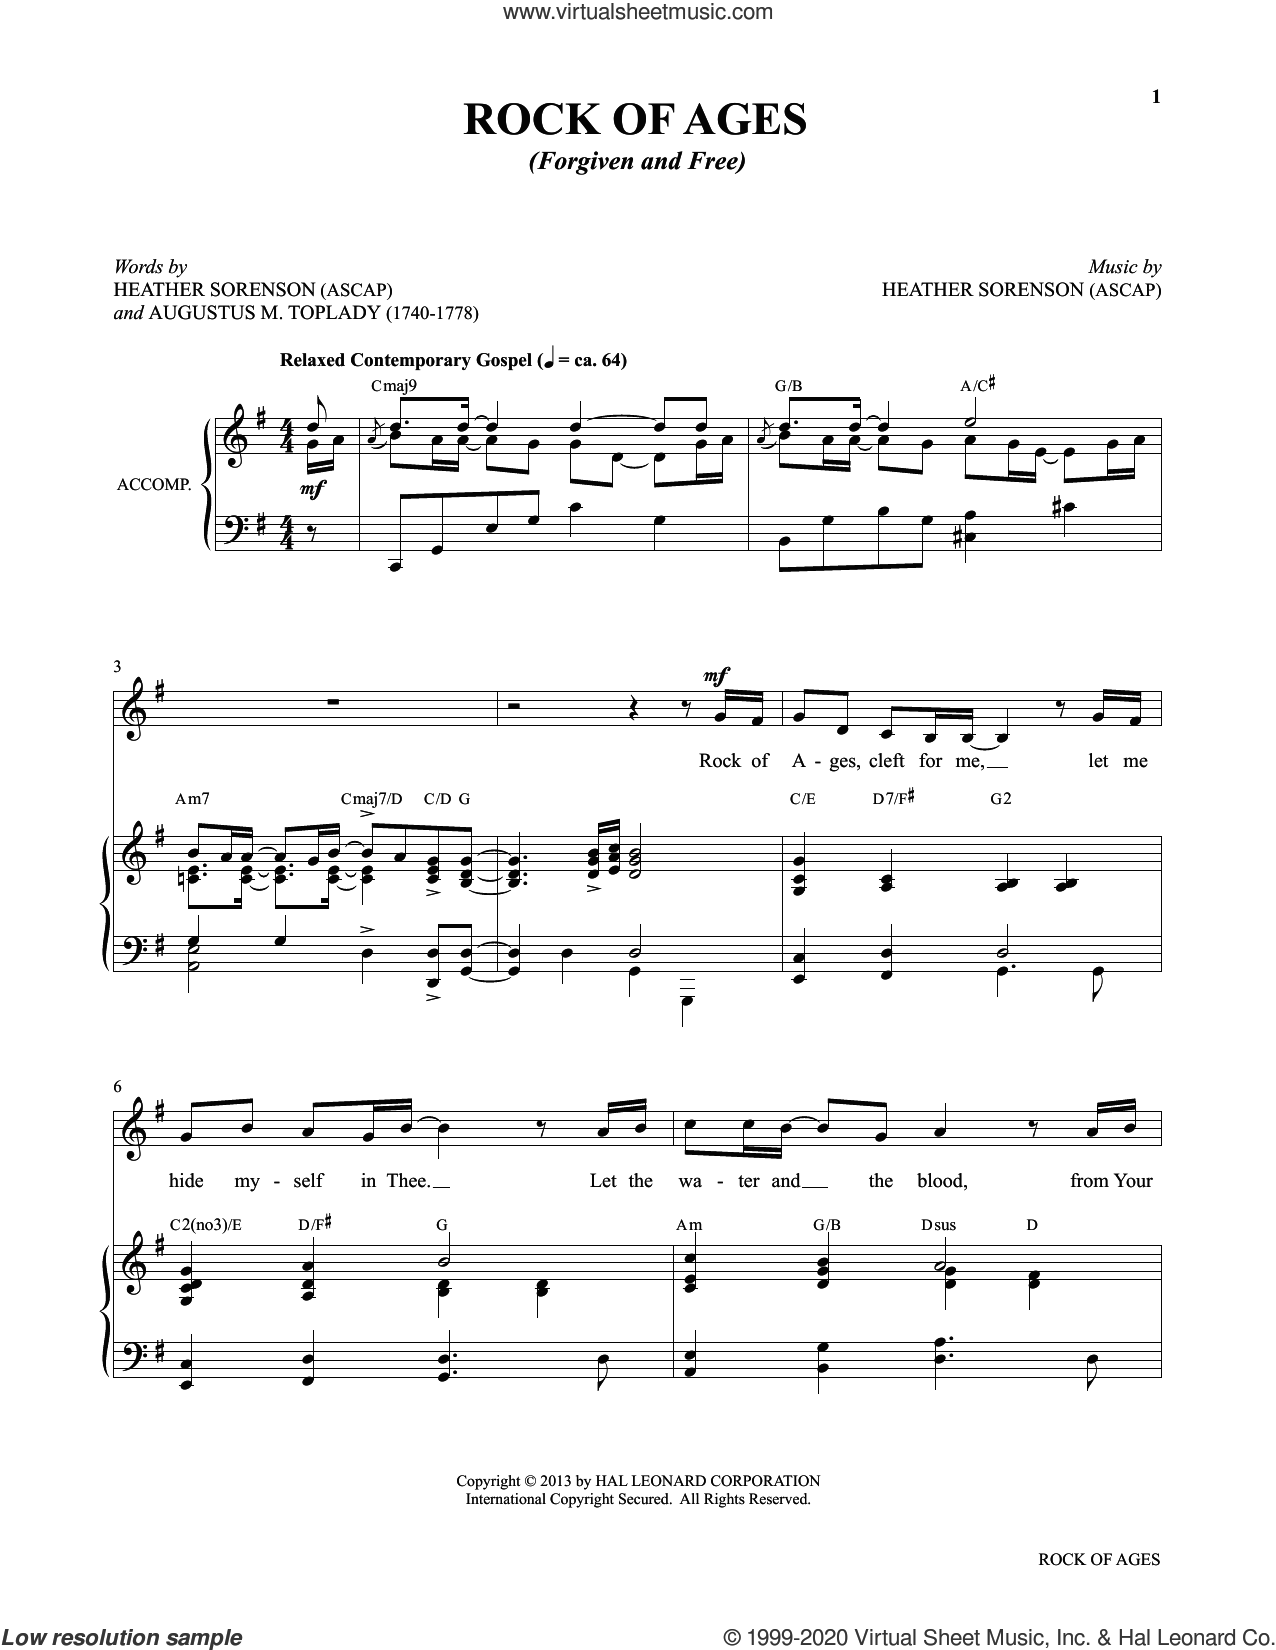 Rock Of Ages (Forgiven And Free) (from My Alleluia: Vocal Solos for Worship) sheet music for voice and piano by Heather Sorenson and Augustus M. Toplady, intermediate skill level